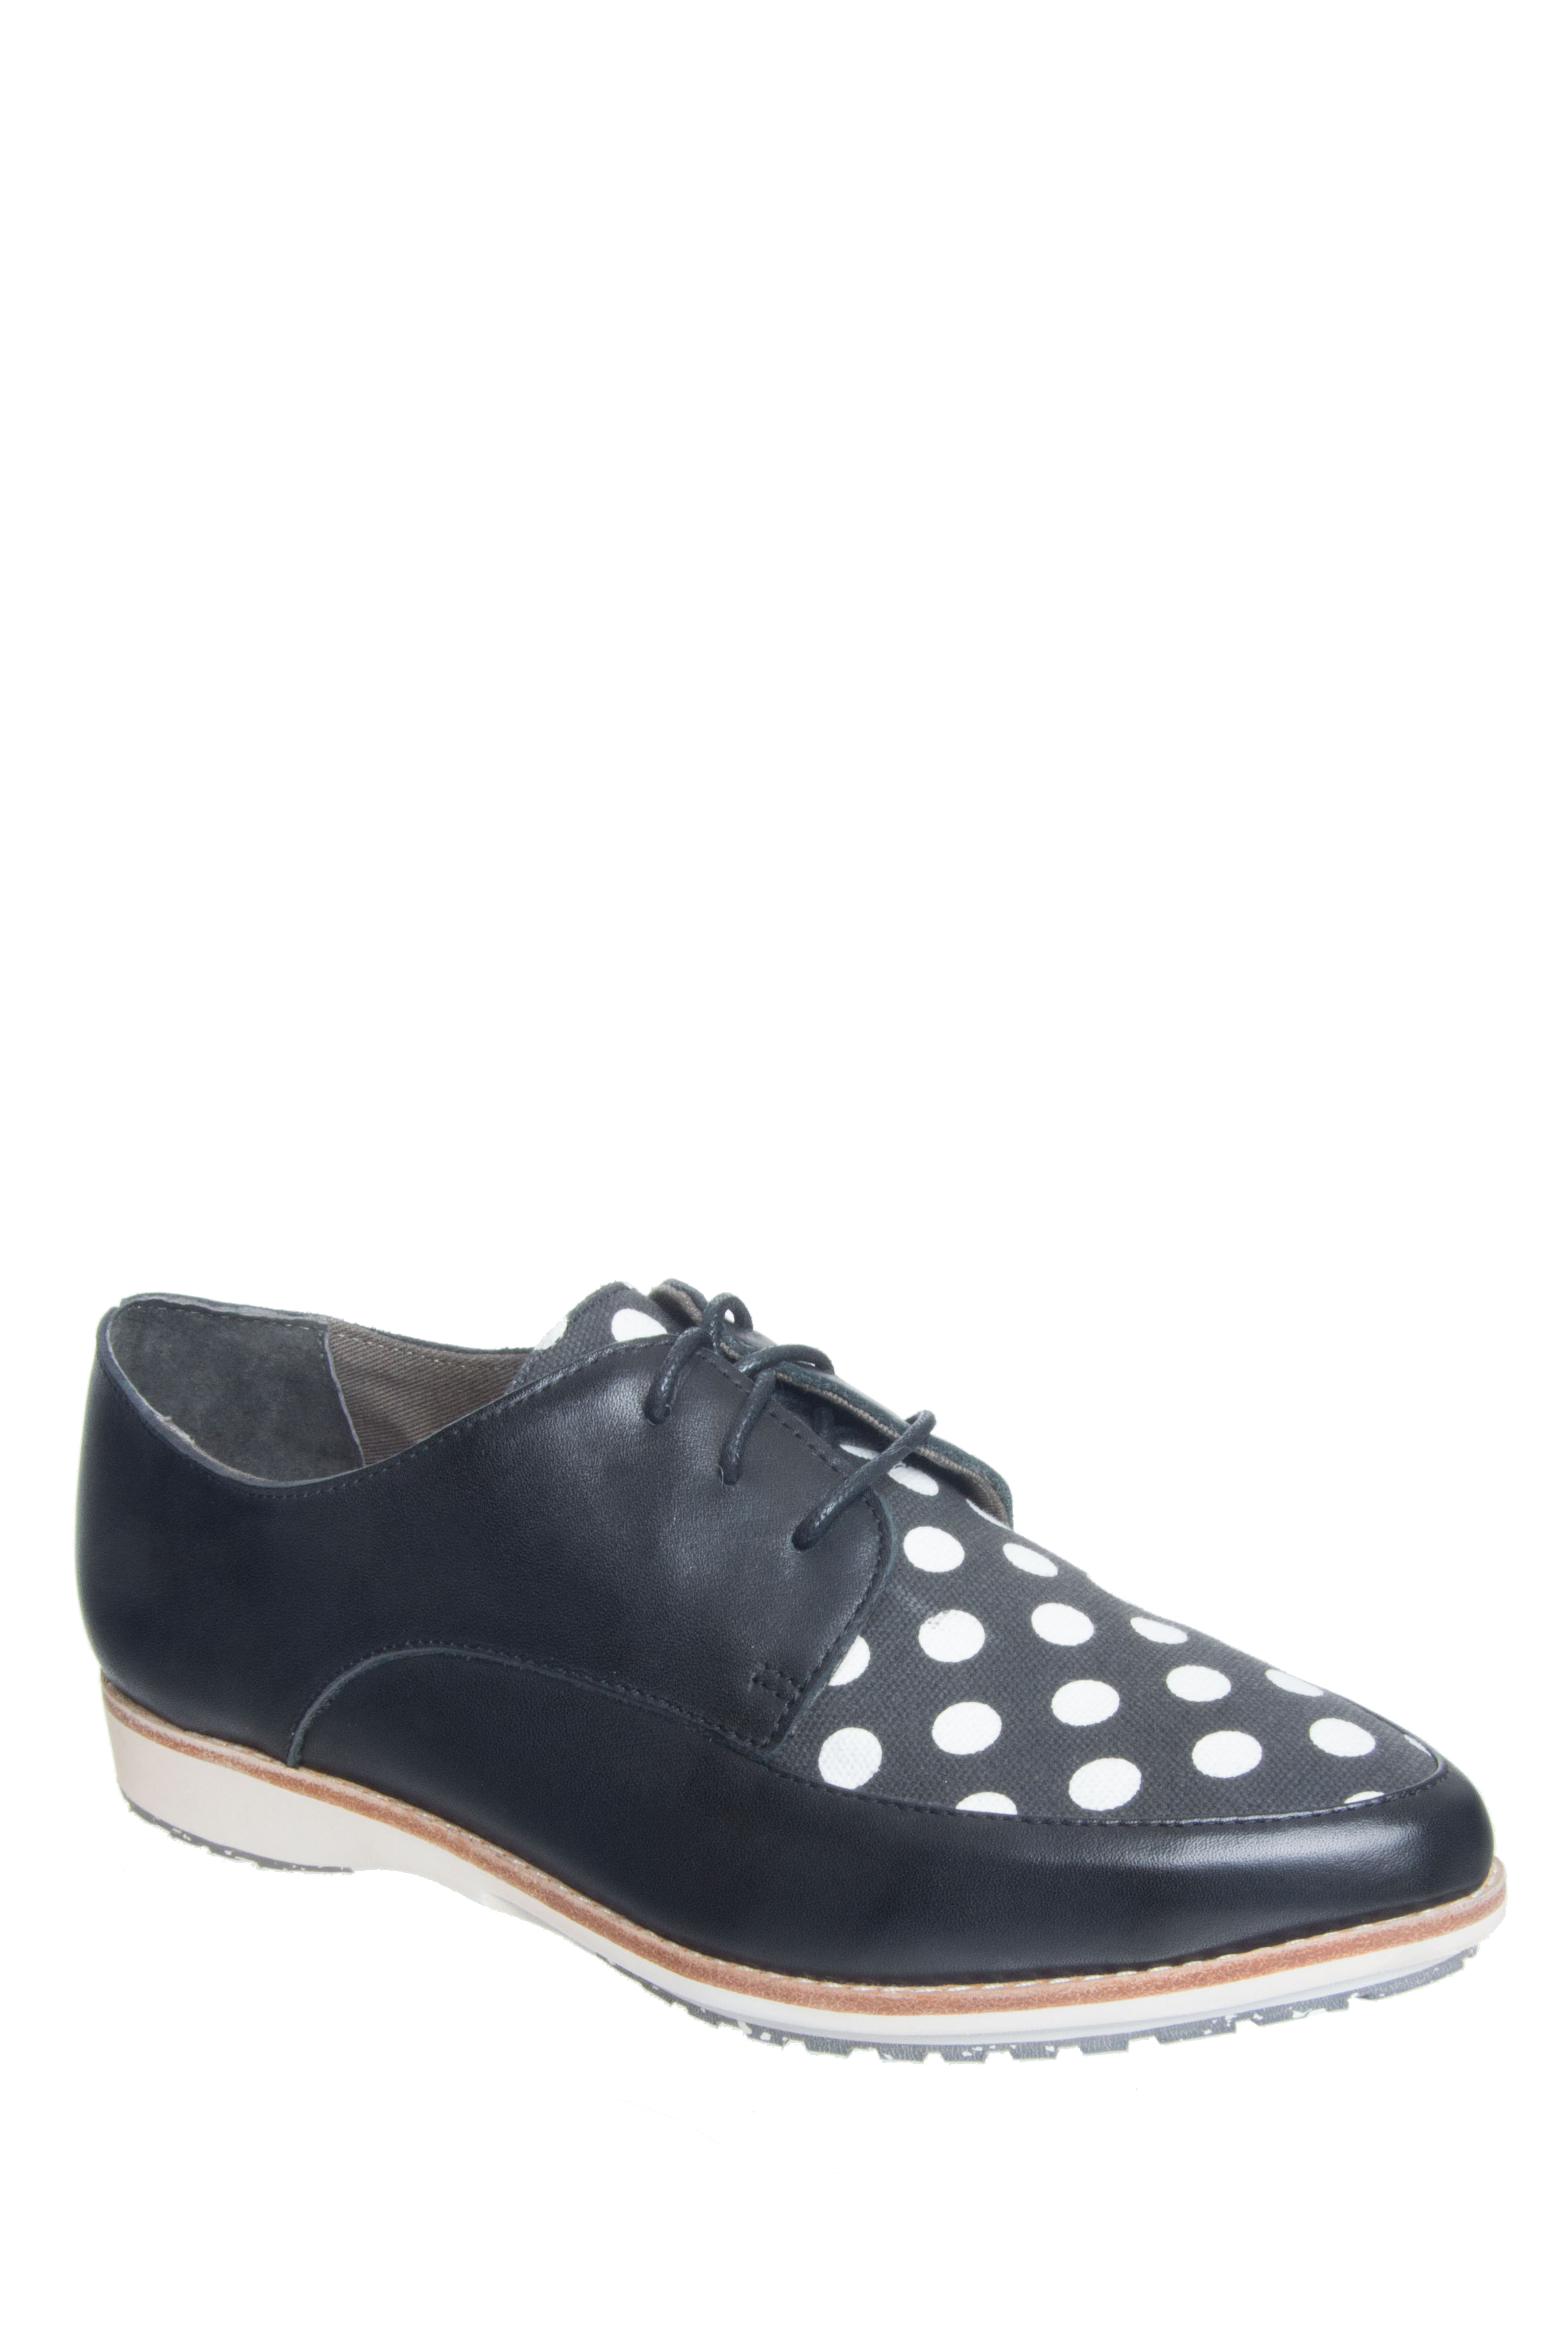 Rollie Nation Madison Derby Oxford - Black / Spot